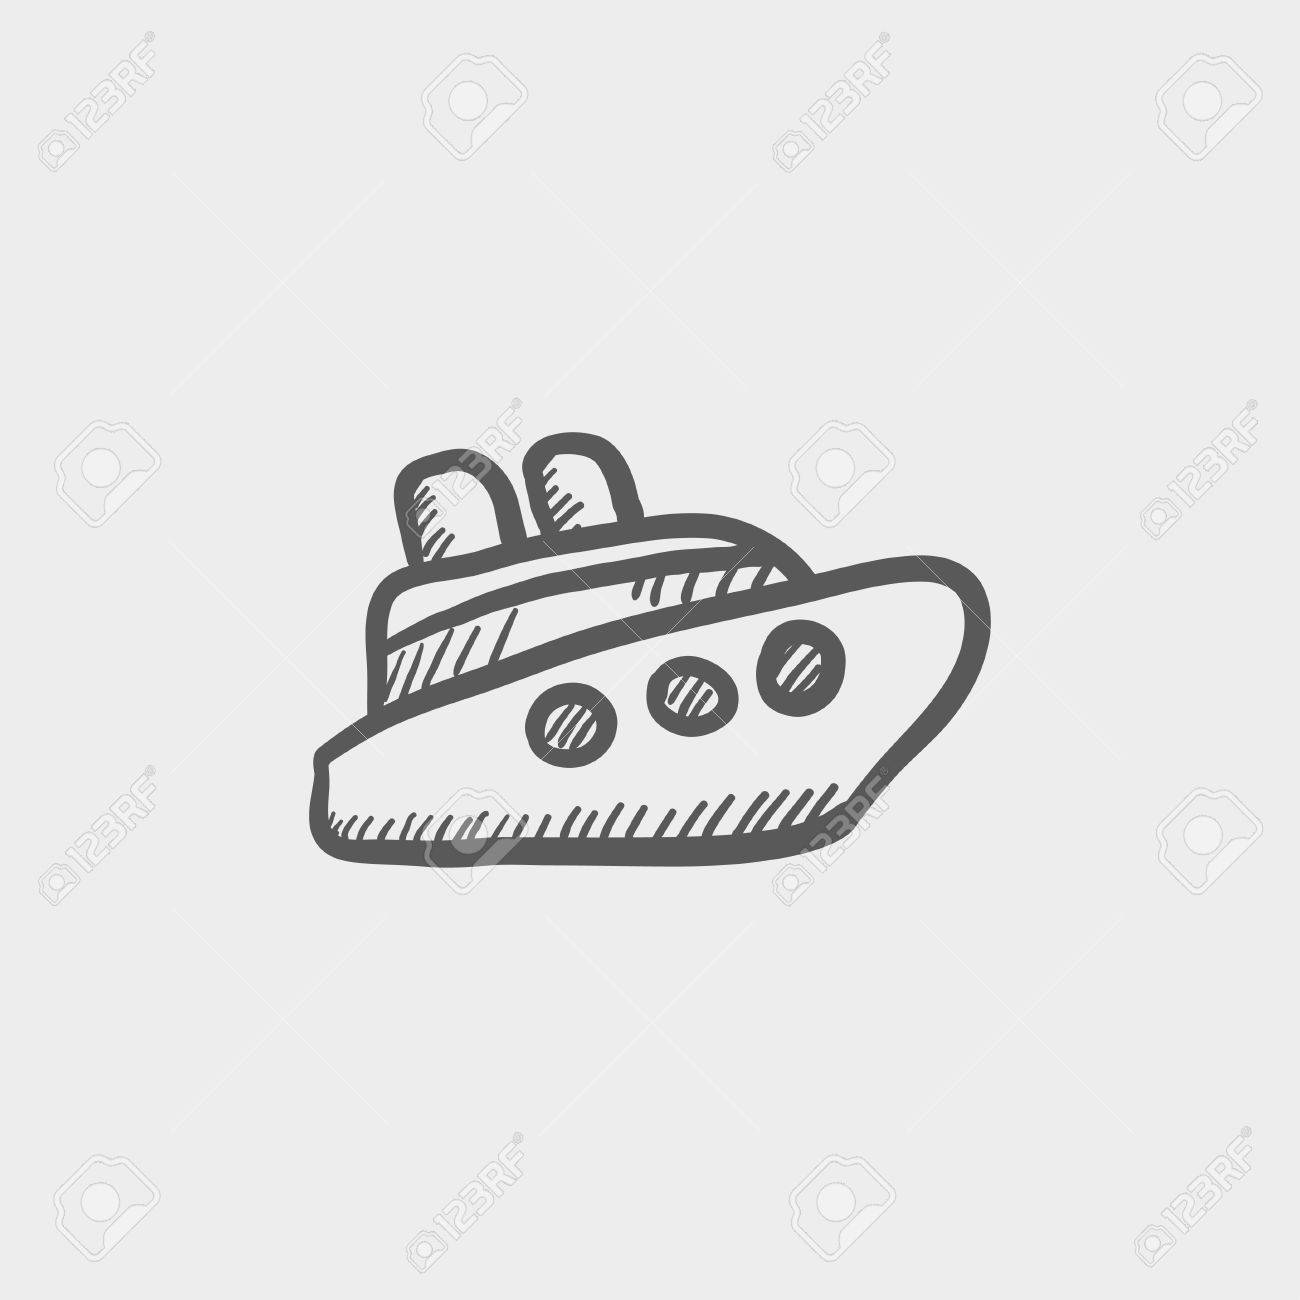 cruise ship sketch icon for web and mobile hand drawn vector